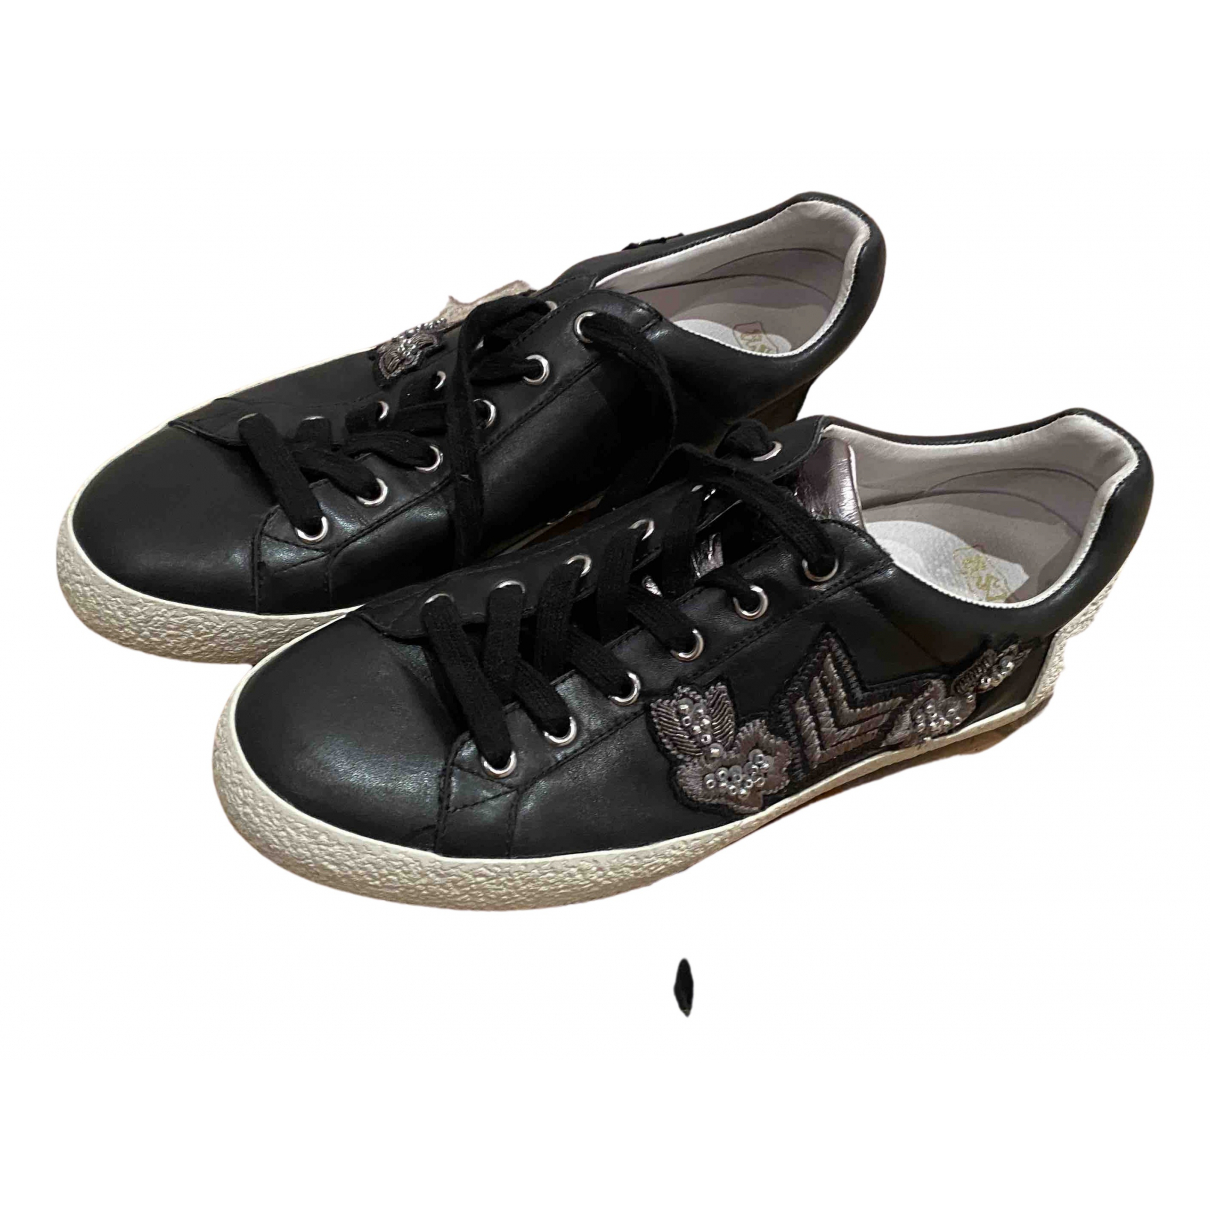 Ash N Black Leather Trainers for Men 42 EU